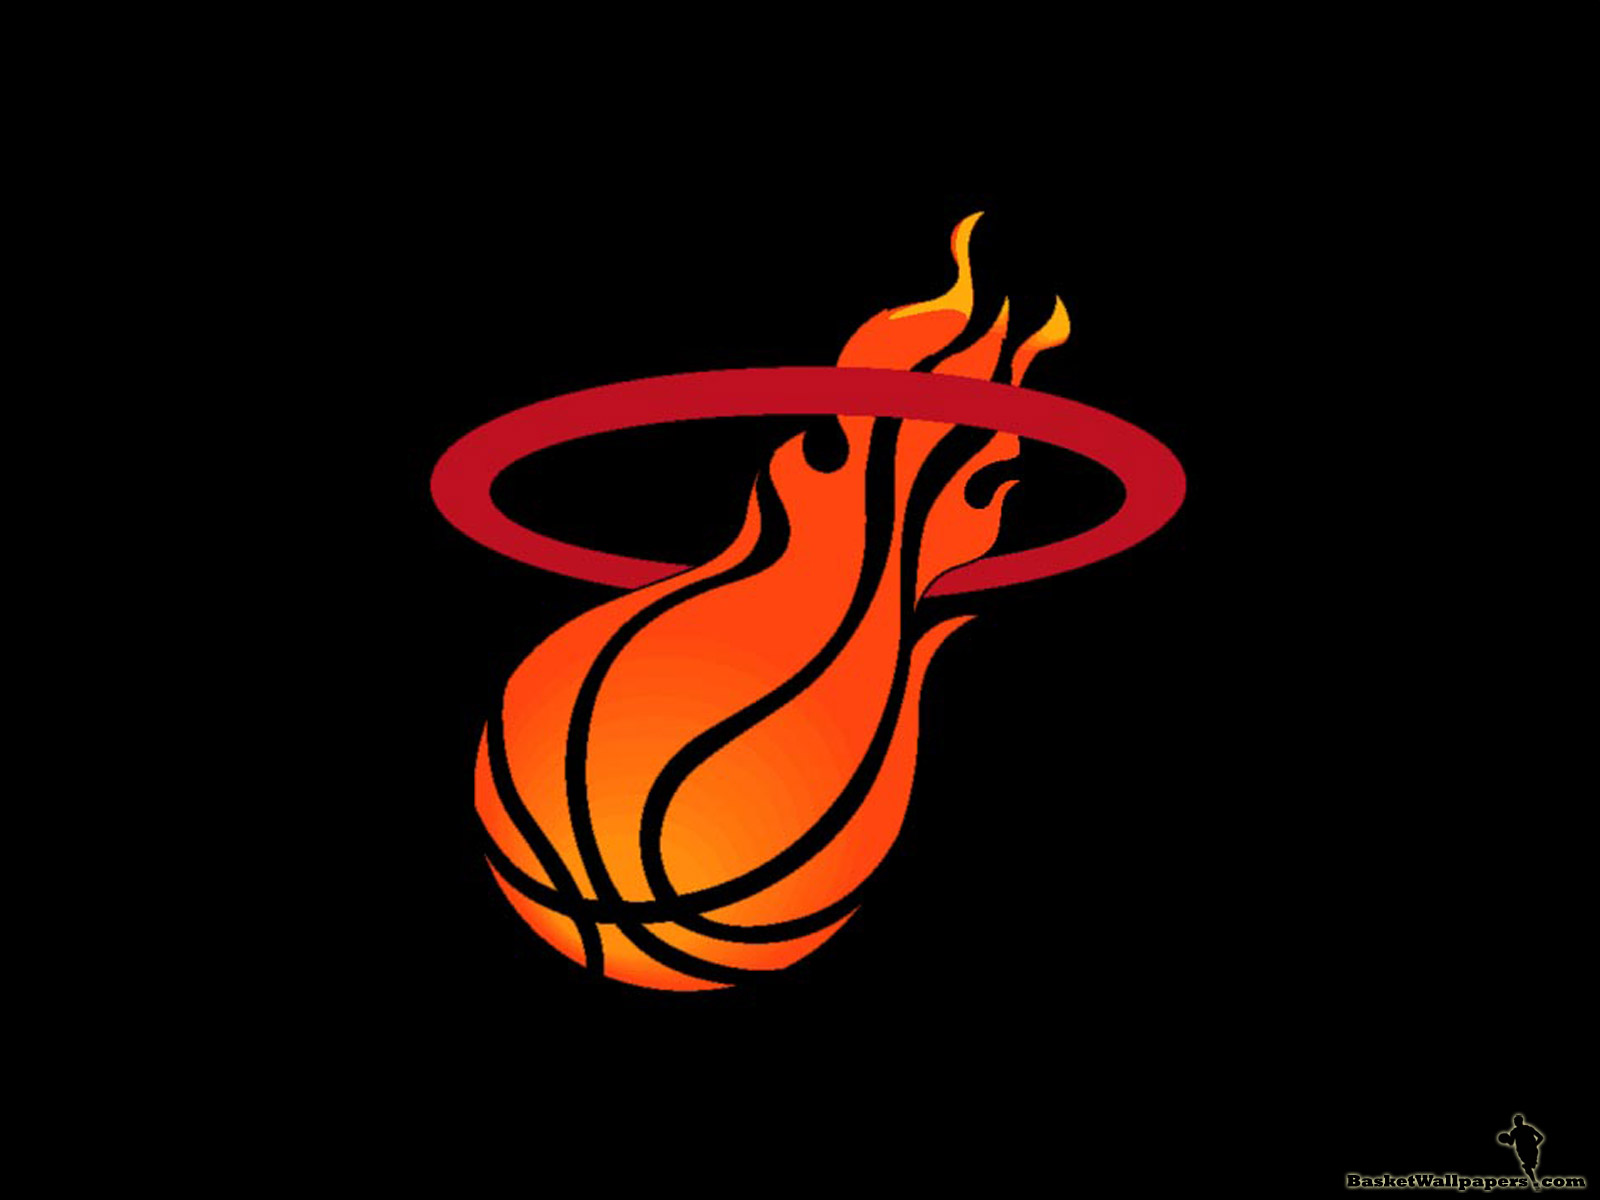 Miami Heat Wallpaper PC Laptop 36 Miami Heat Pictures in FHD 1600x1200